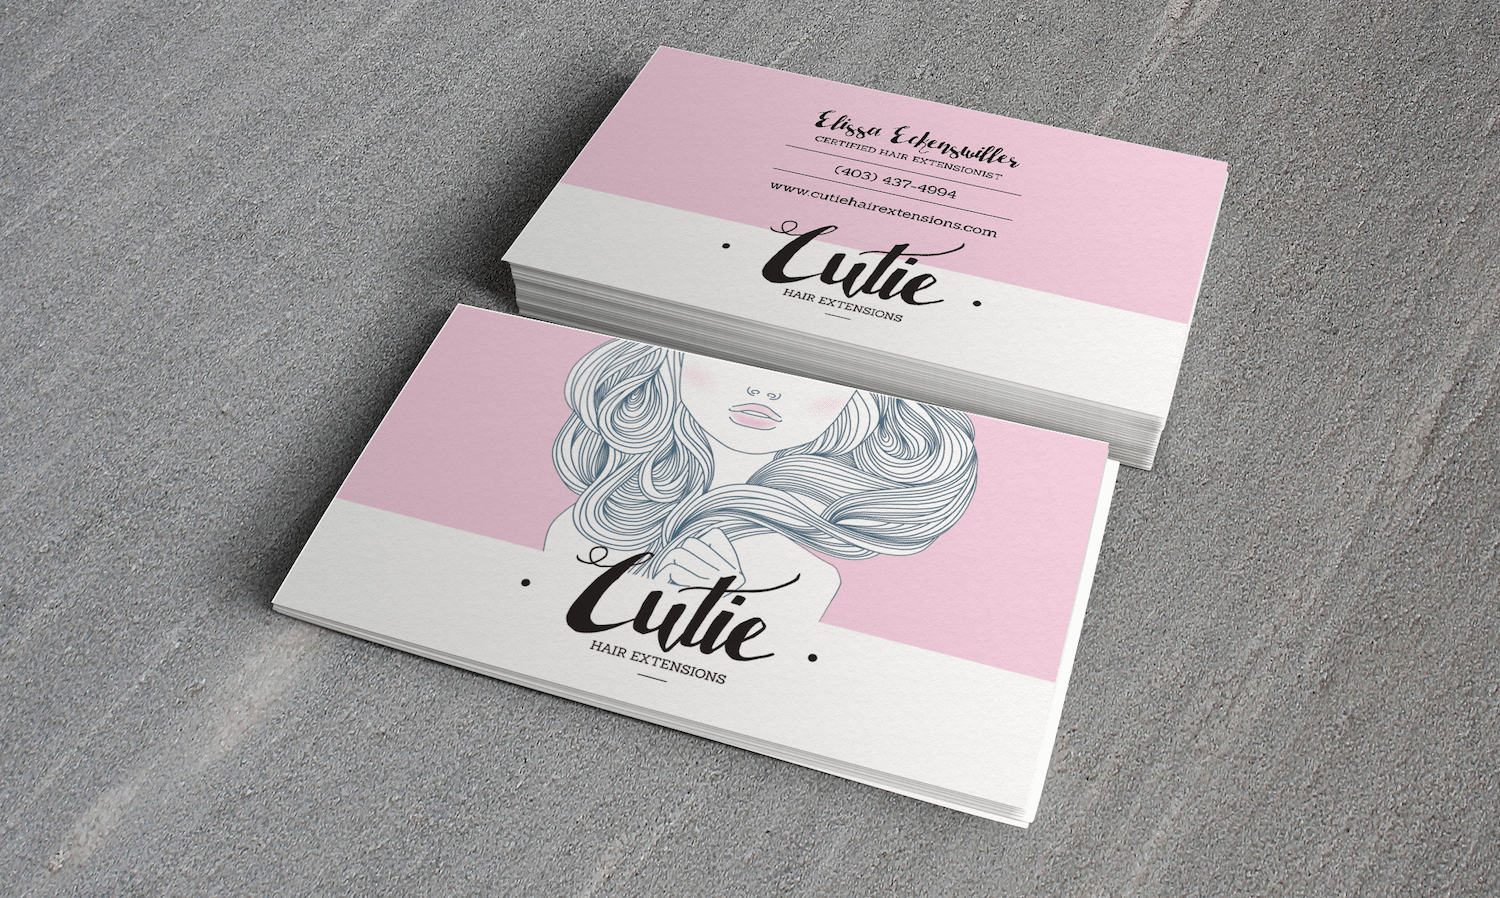 Cutie Hair Extensions Logo and Business Card Design